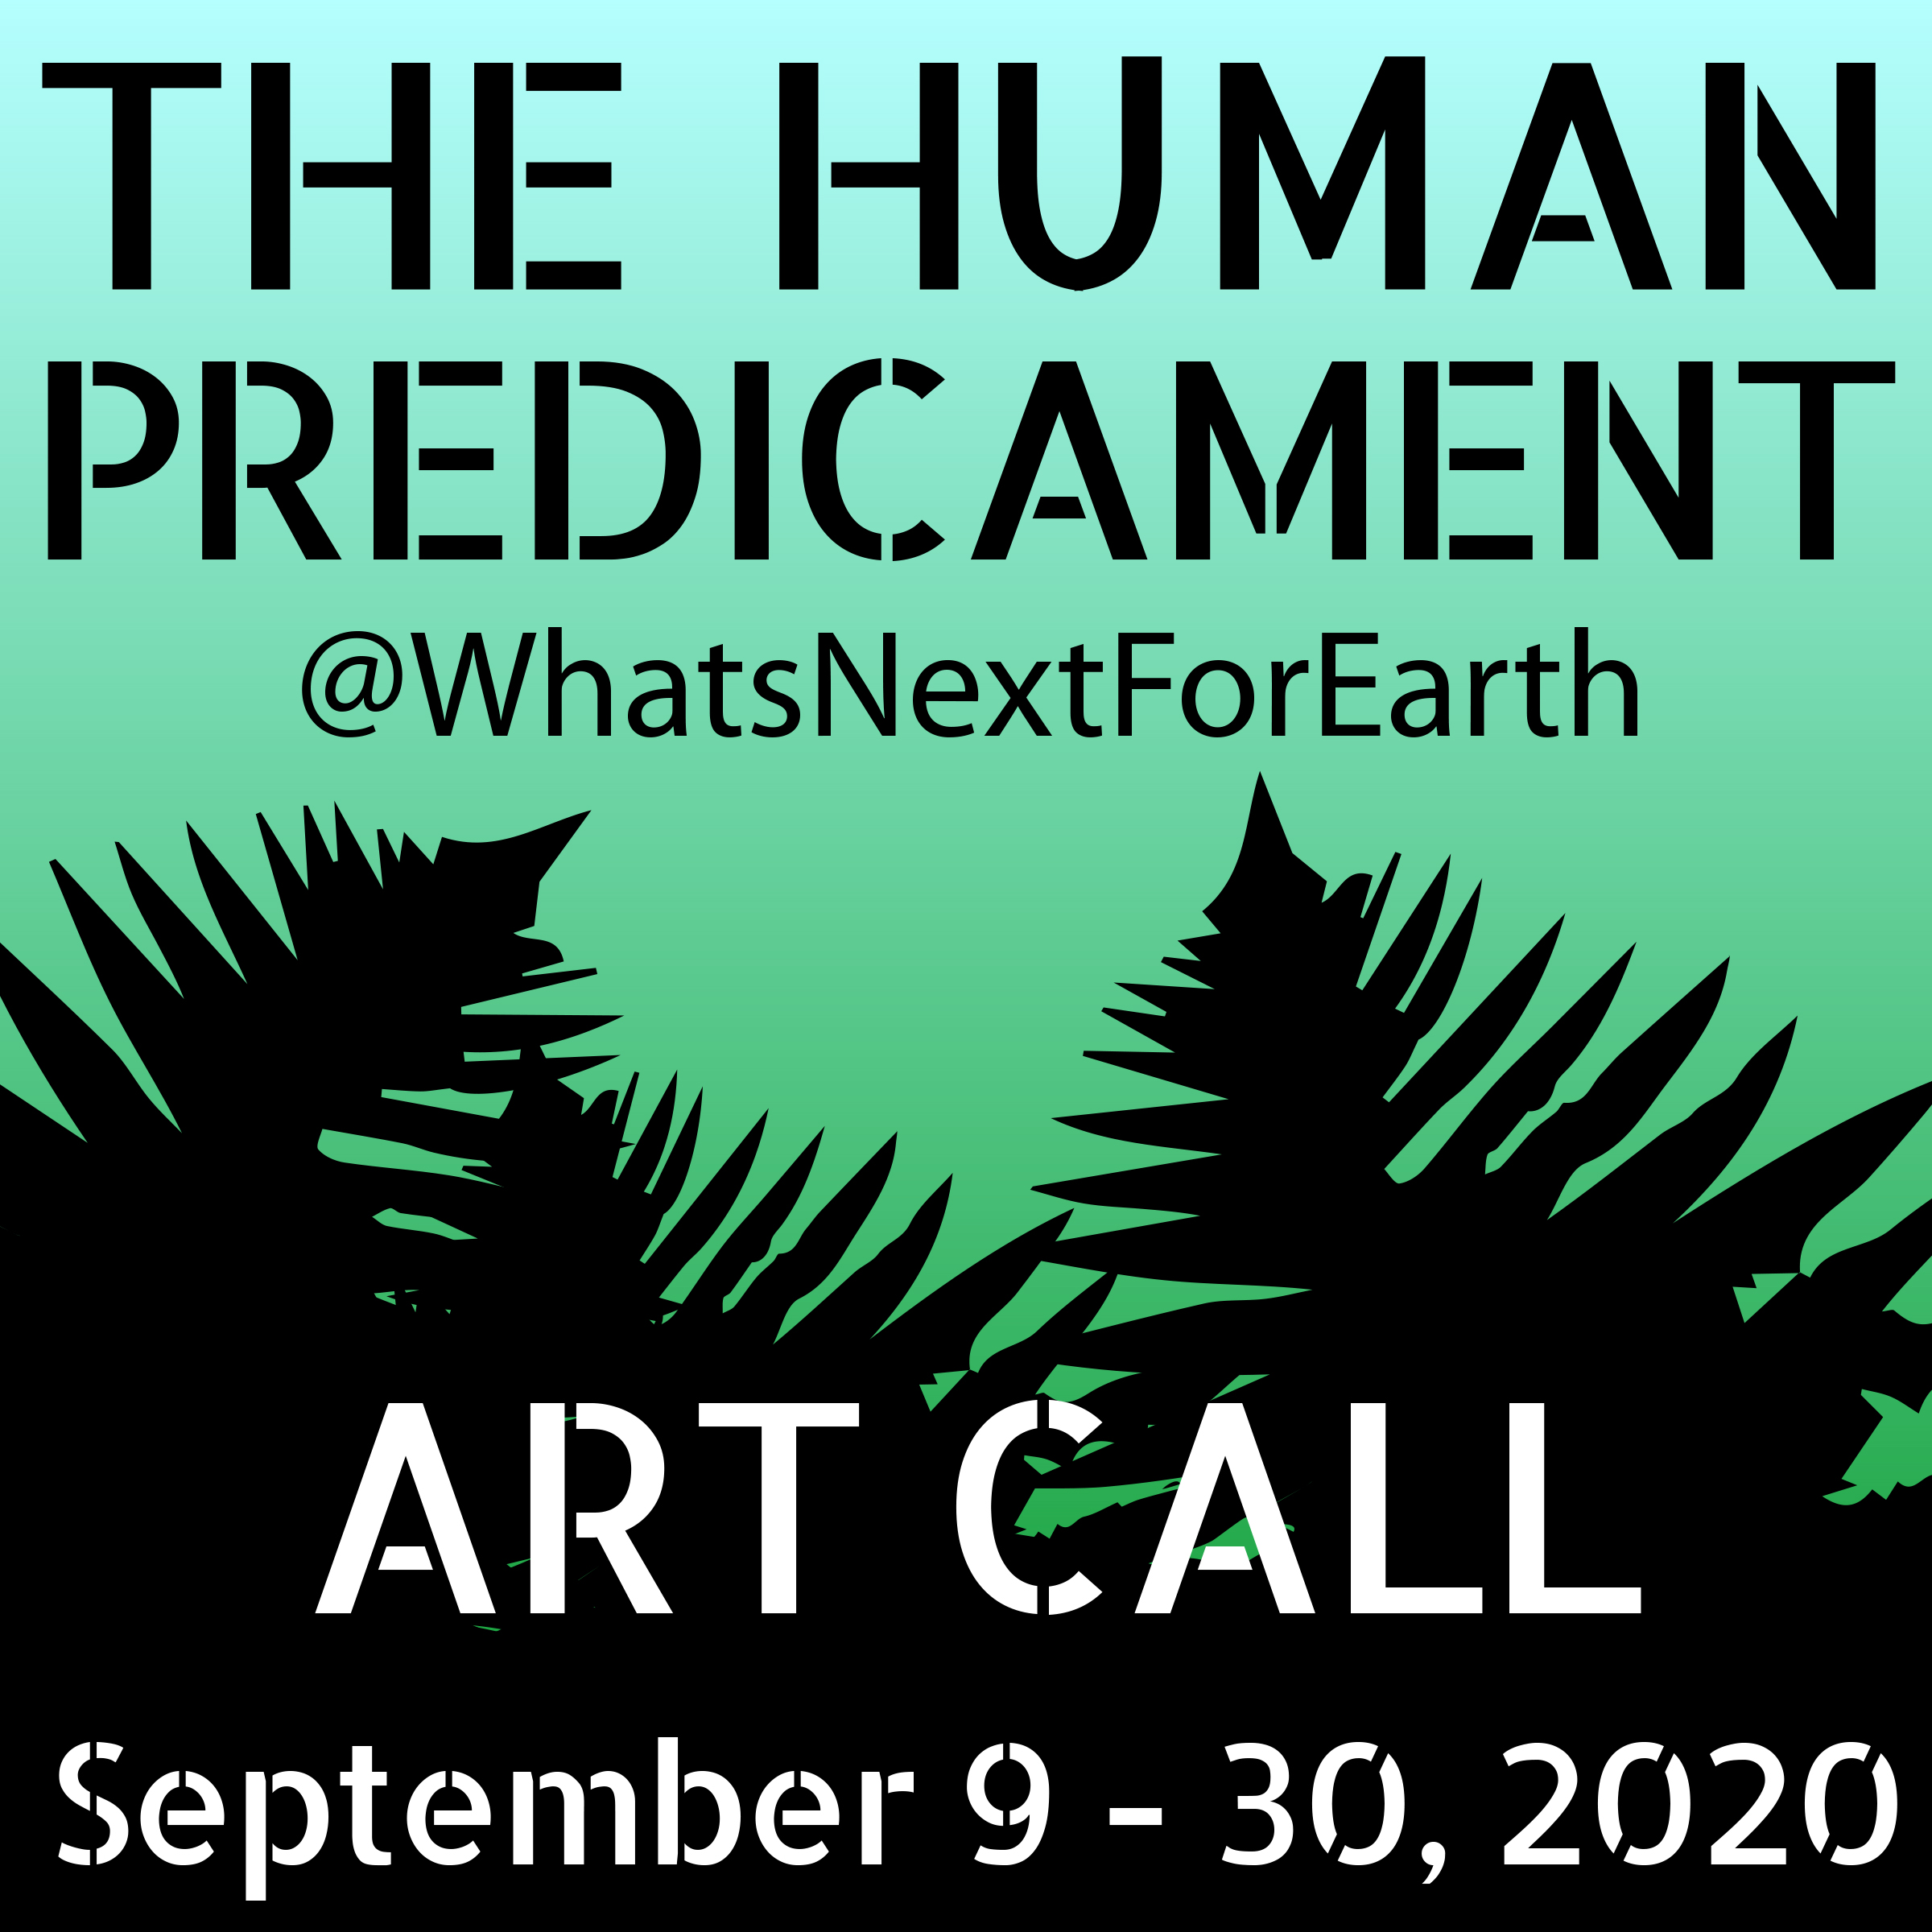 What's Next for Earth Human Predicament Art Call